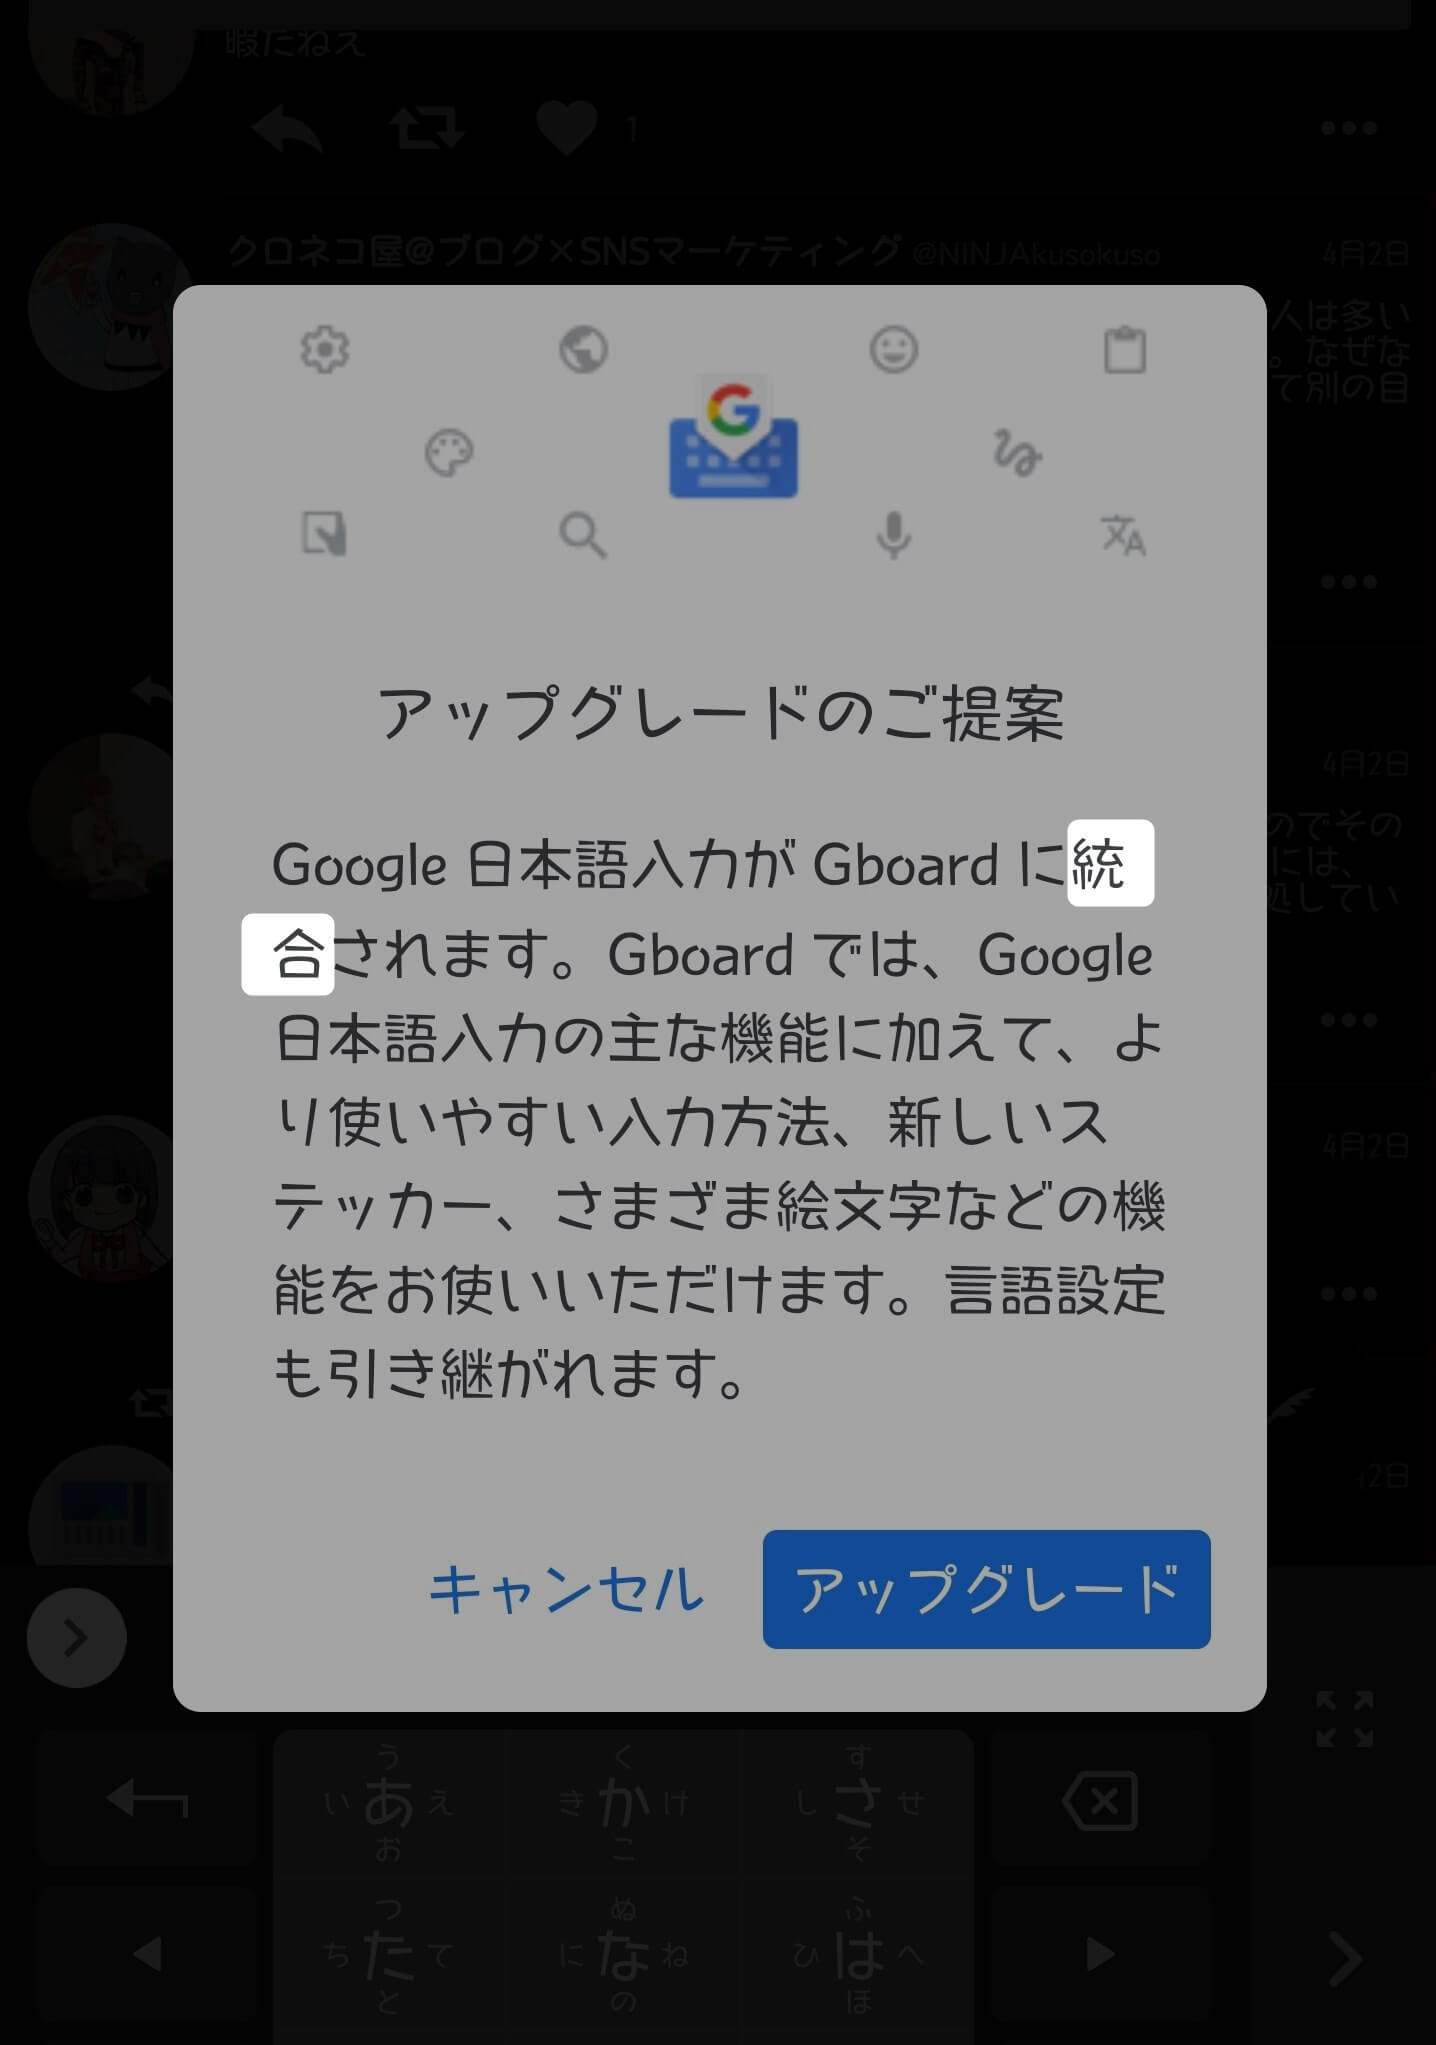 Gboard-upgrade-popup-2